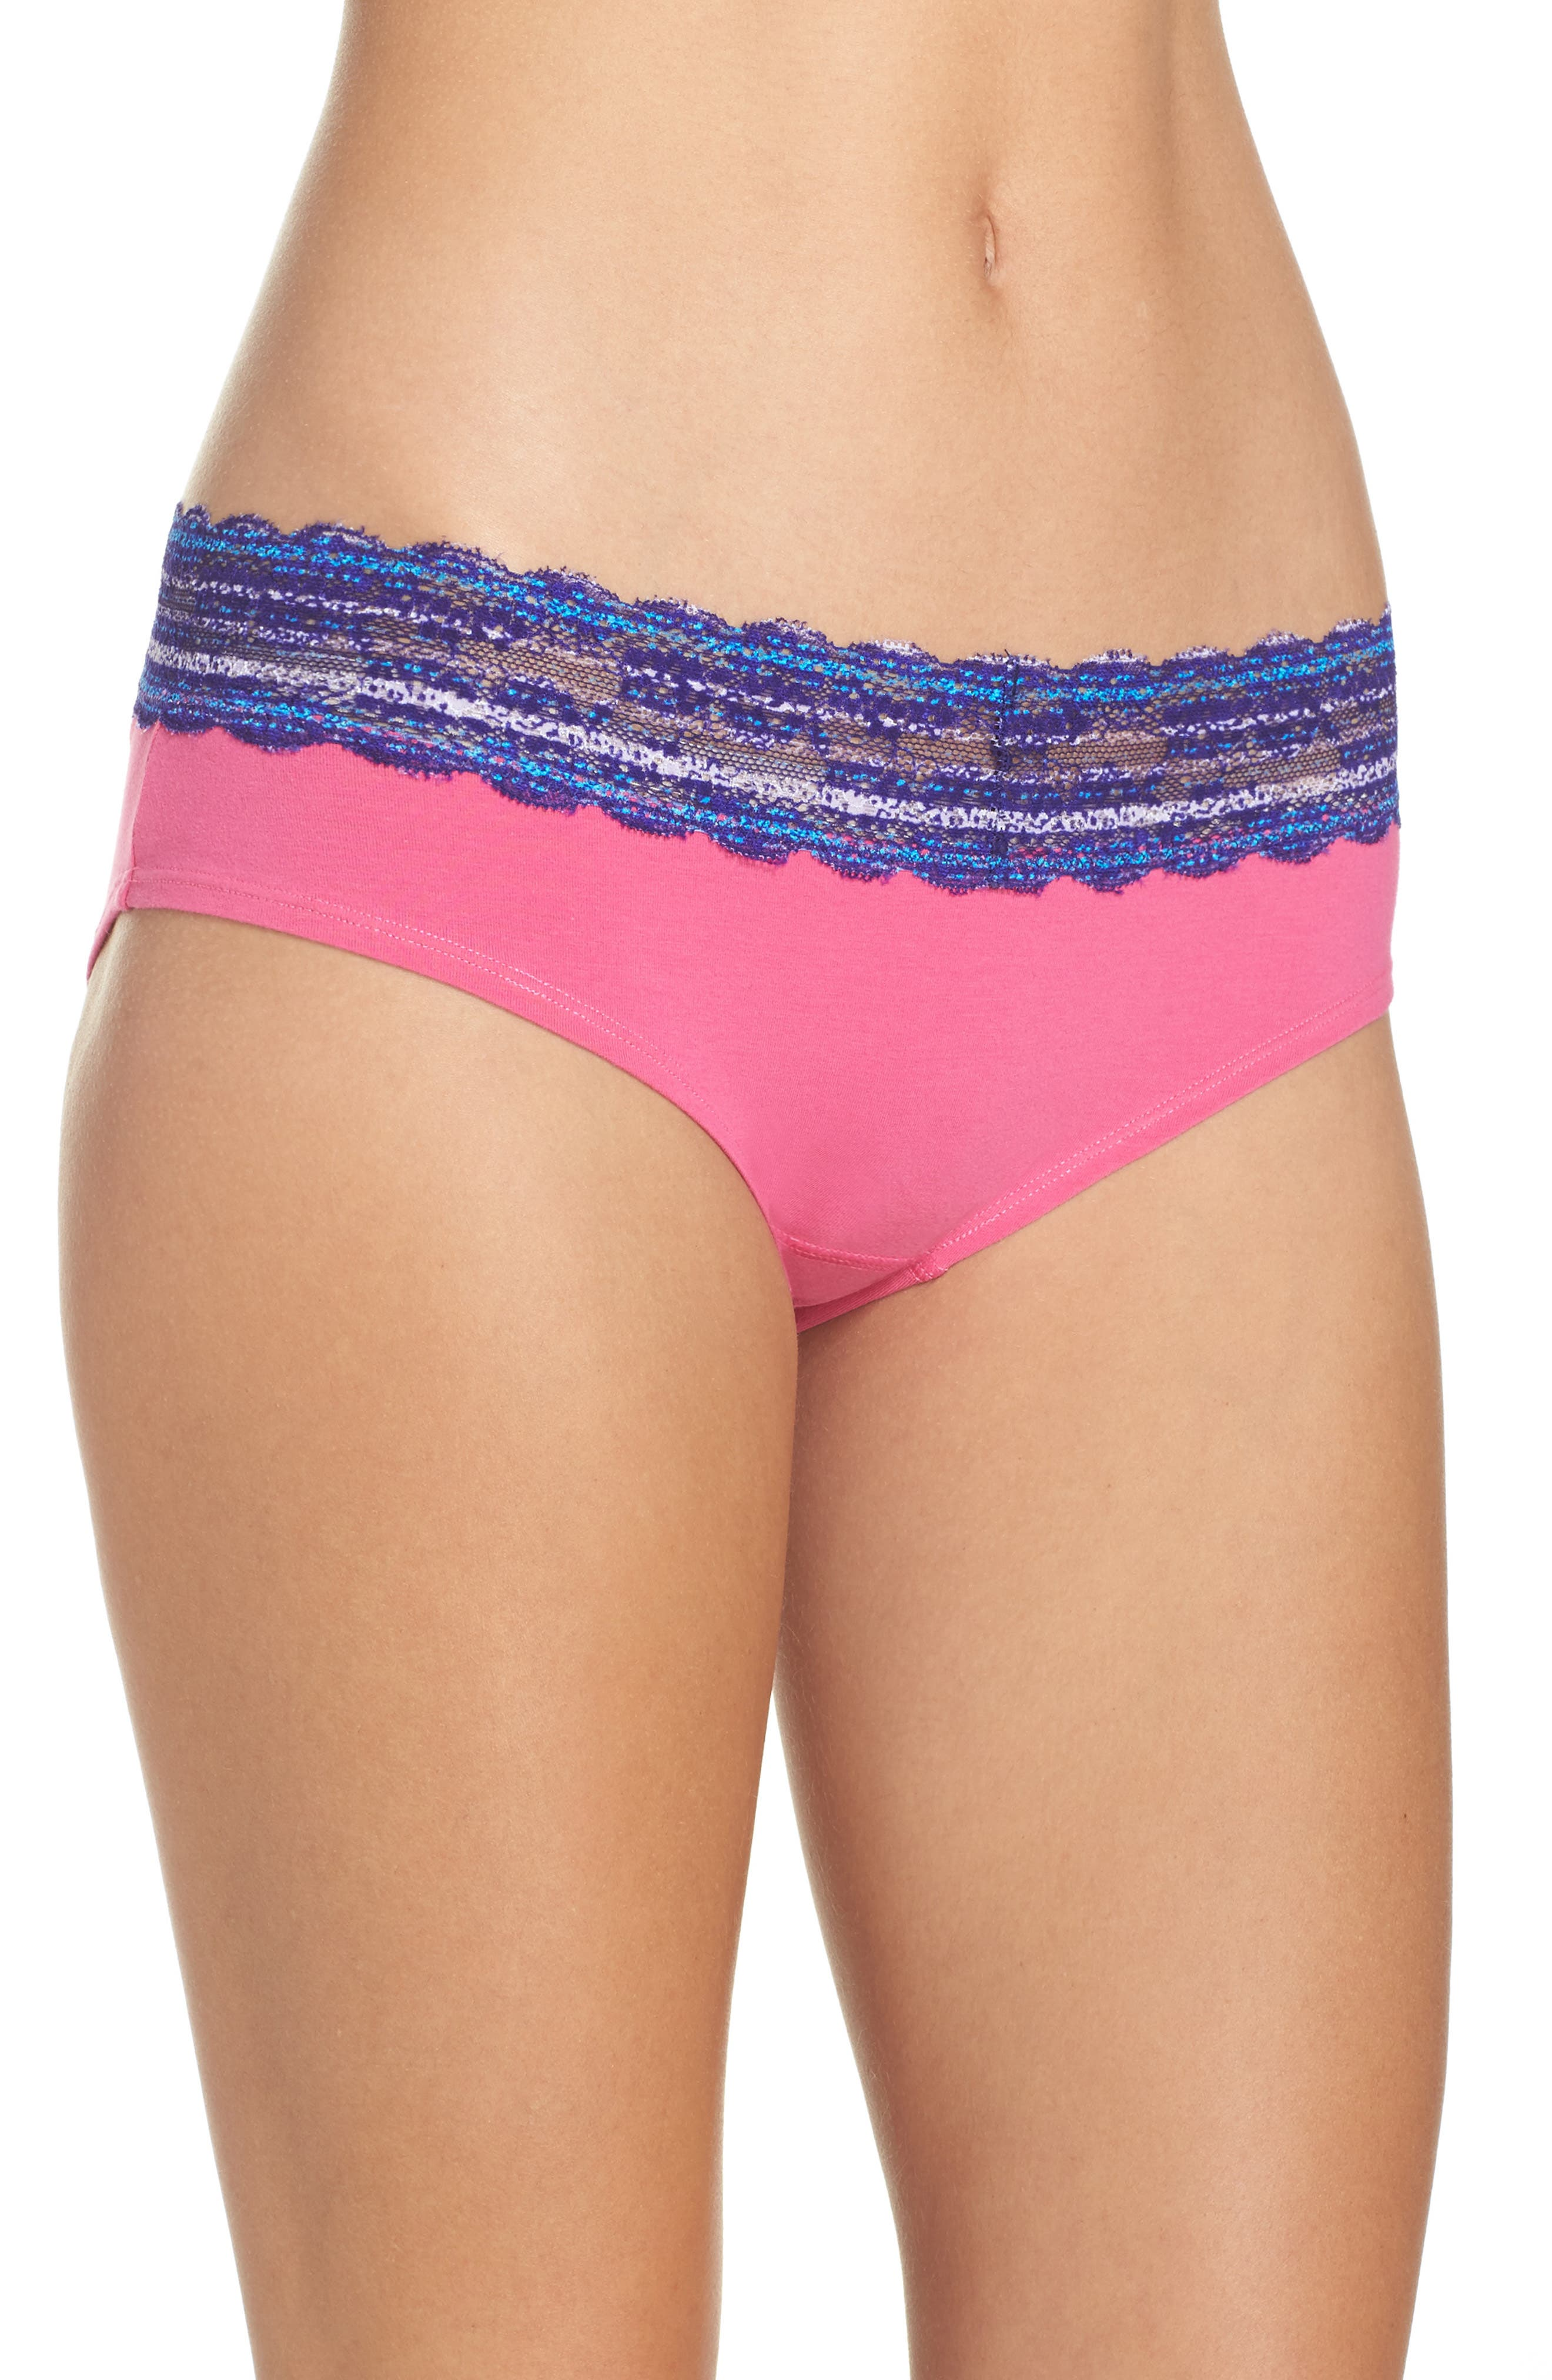 Main Image - h.dew 'Becca' Hipster Briefs (Regular & Plus Size) (5 for $30)